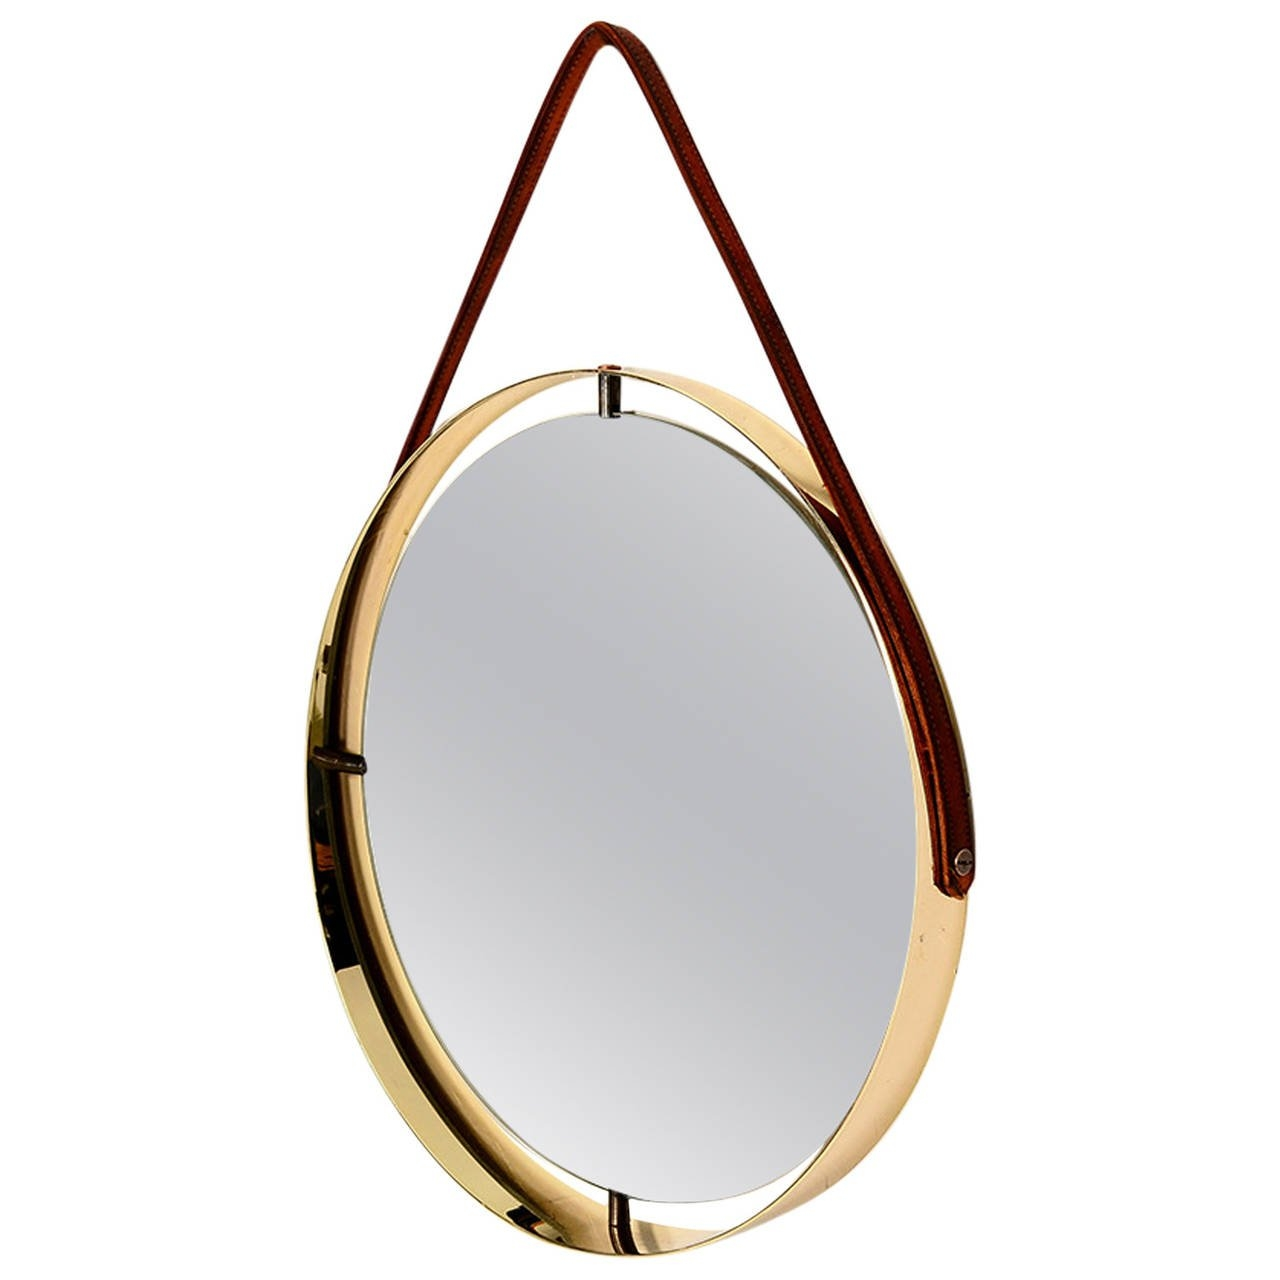 Round Mirror With Leather Strap For Sale At 1stdibs Within Leather Round Mirror (Image 12 of 15)